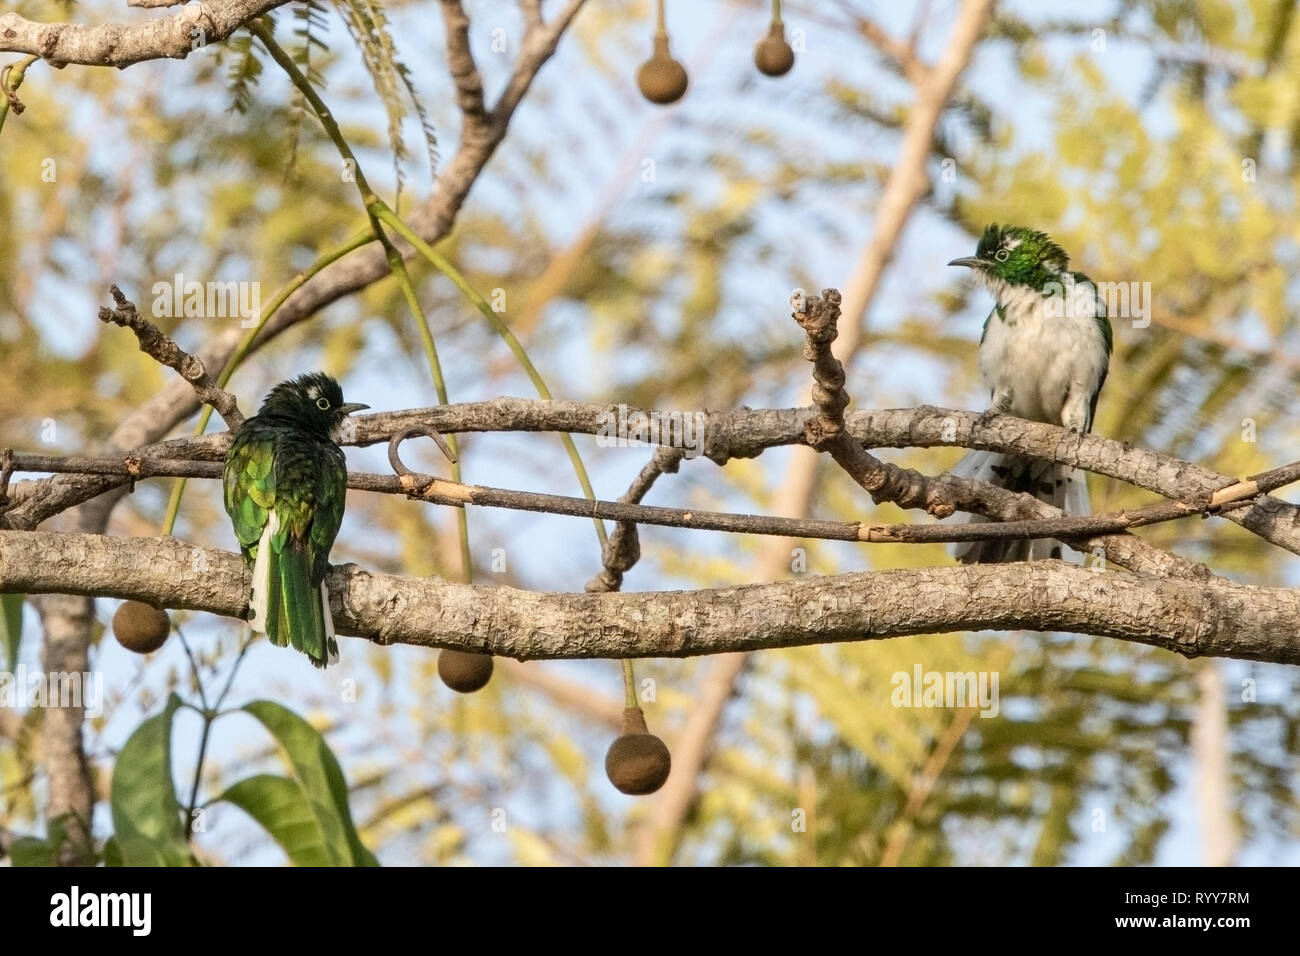 Klaas's Cuckoo, two males perched on branch in Makasutu Forest, Gambia 3 March 2019 - Stock Image